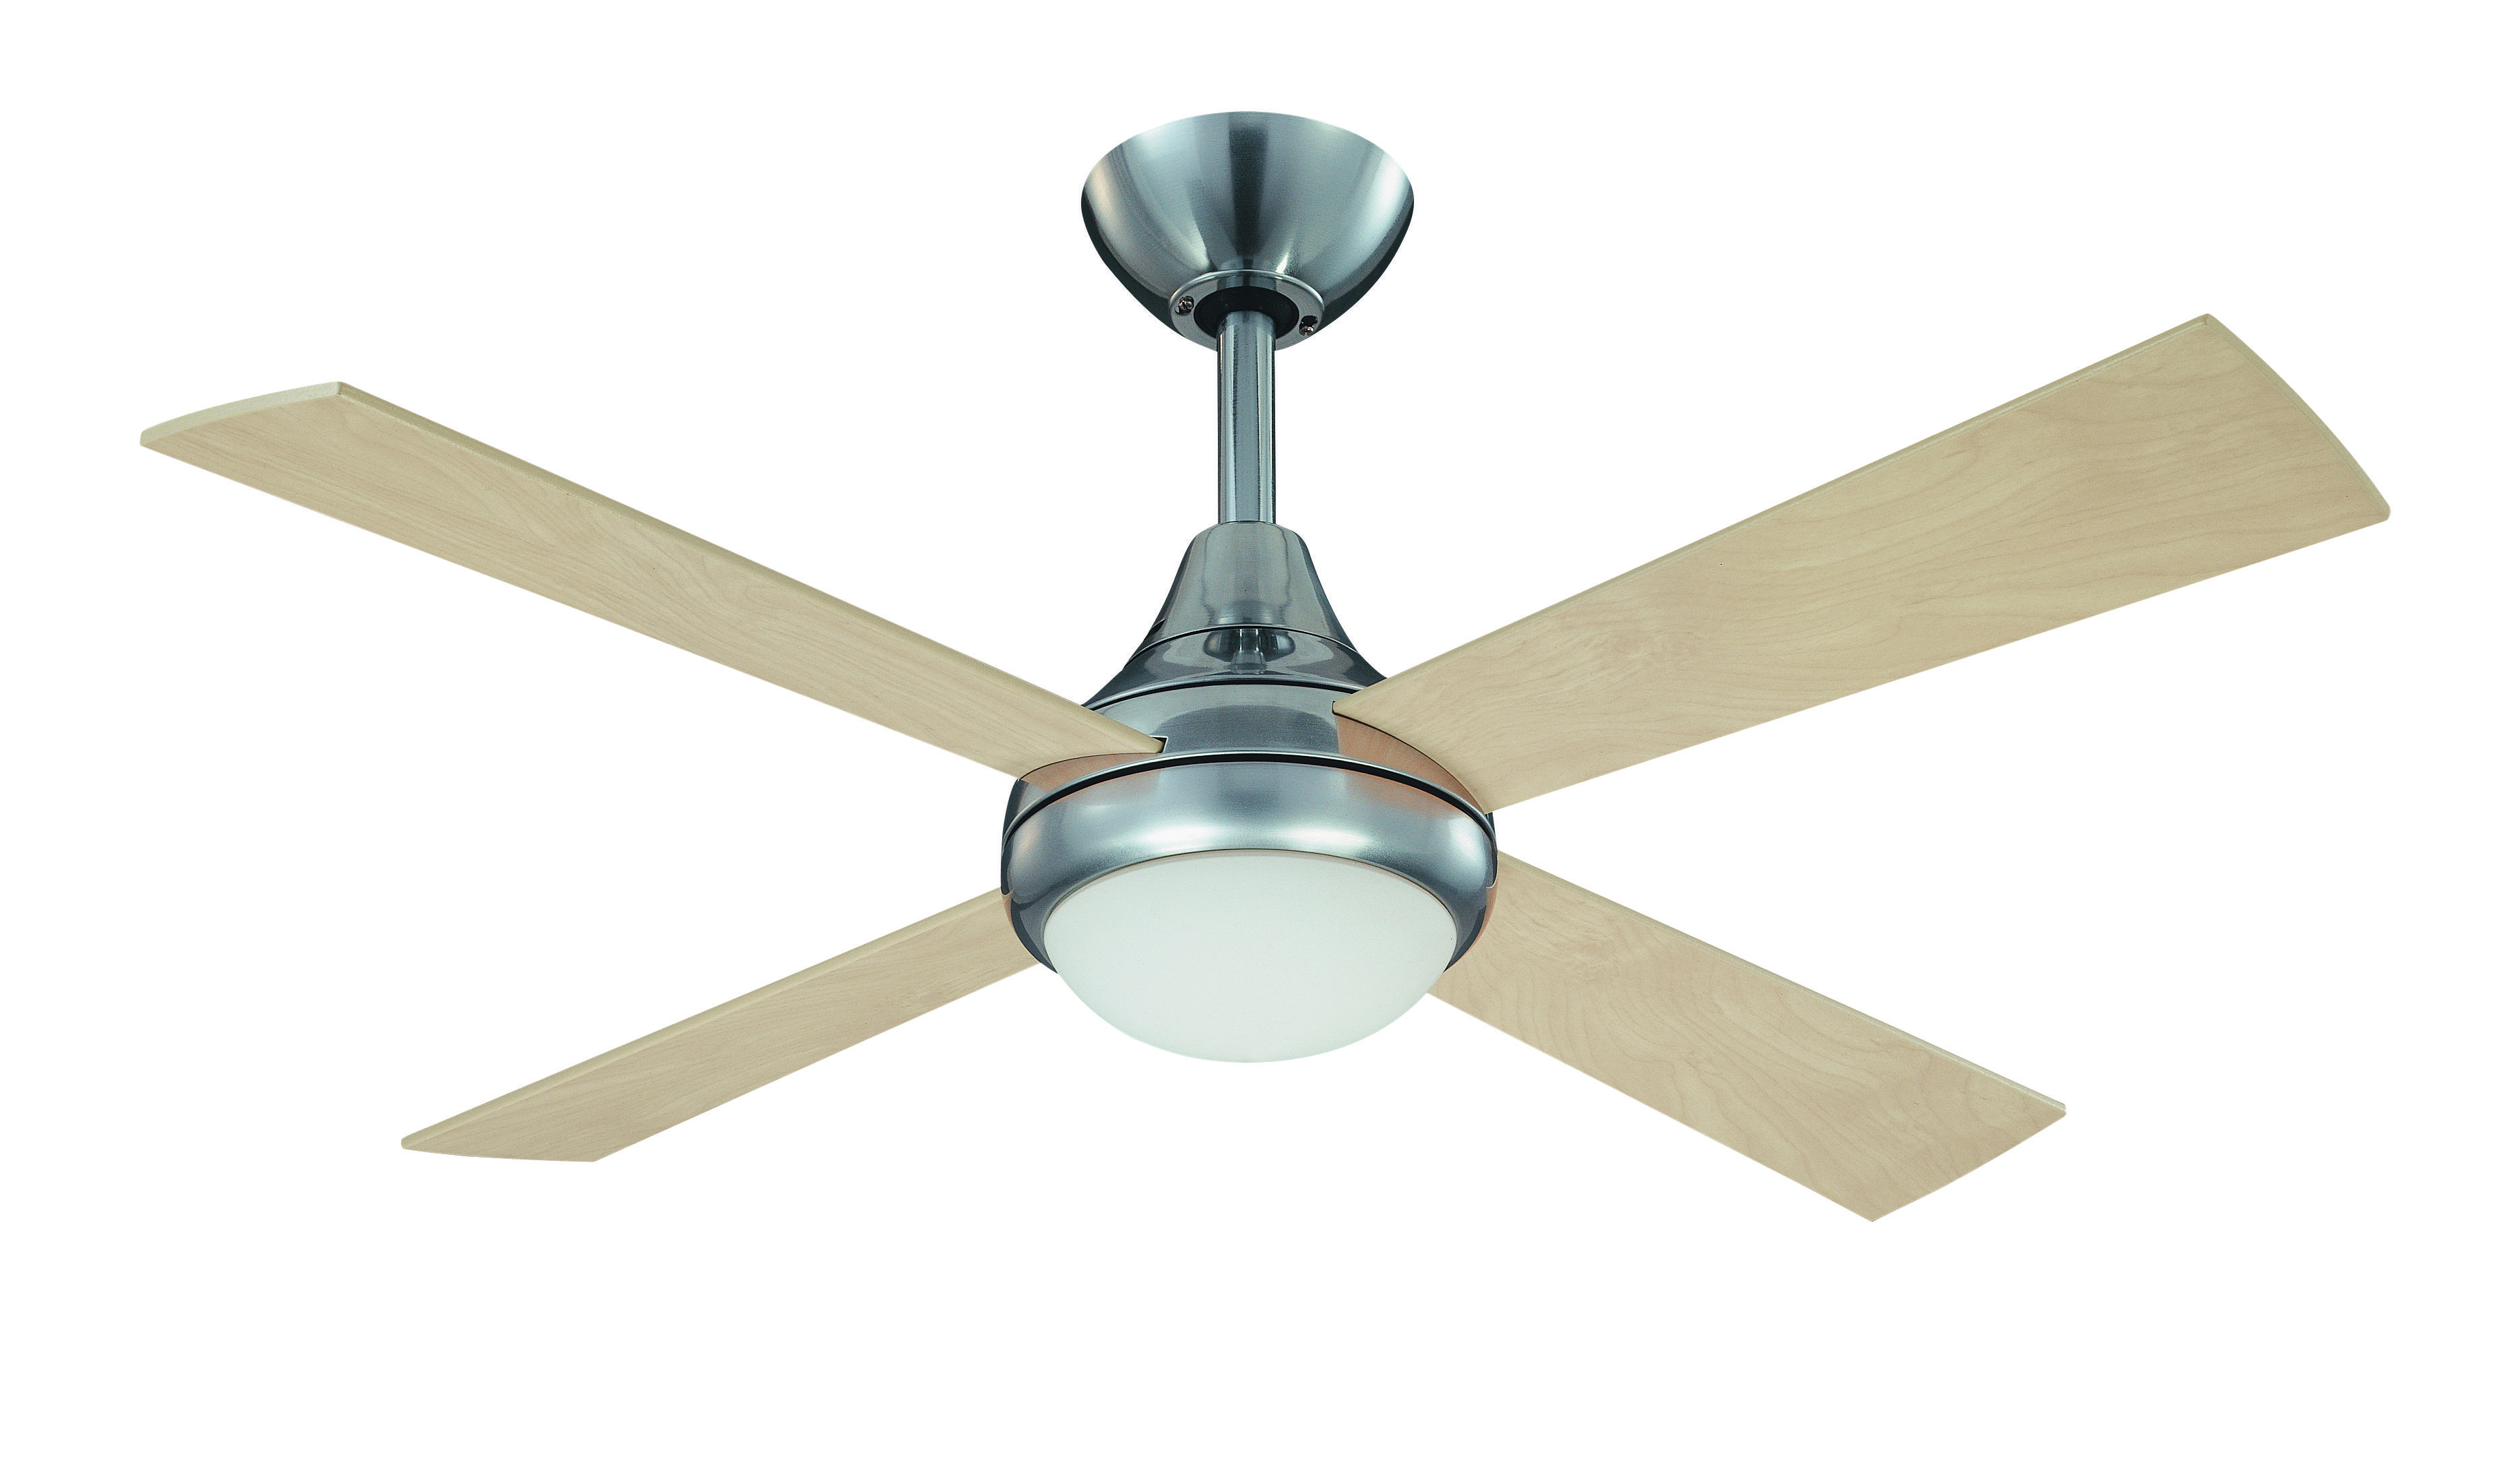 Fantasia Sigma 42 Stainless Steel Ceiling Fan Remote